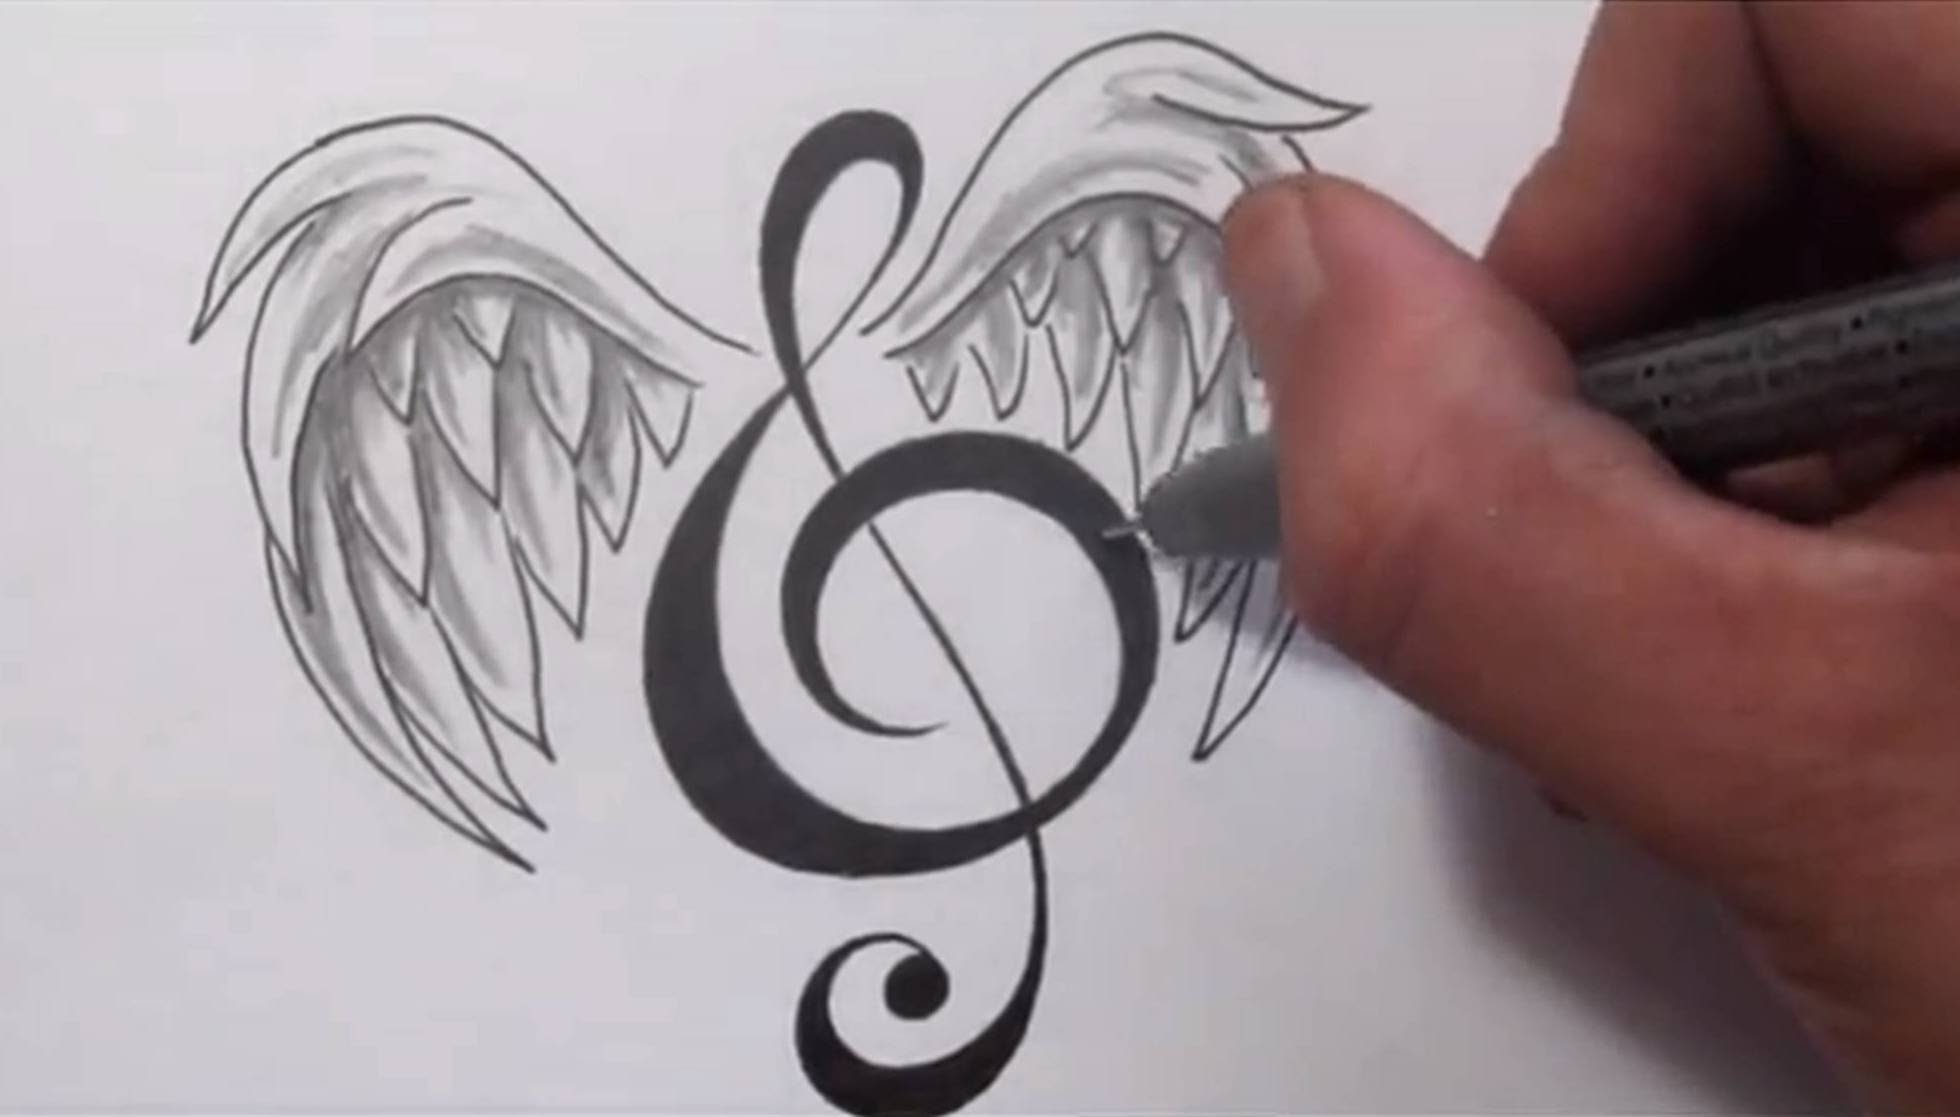 Drawn musician pencil drawing A Music Wings Tattoos YouTube